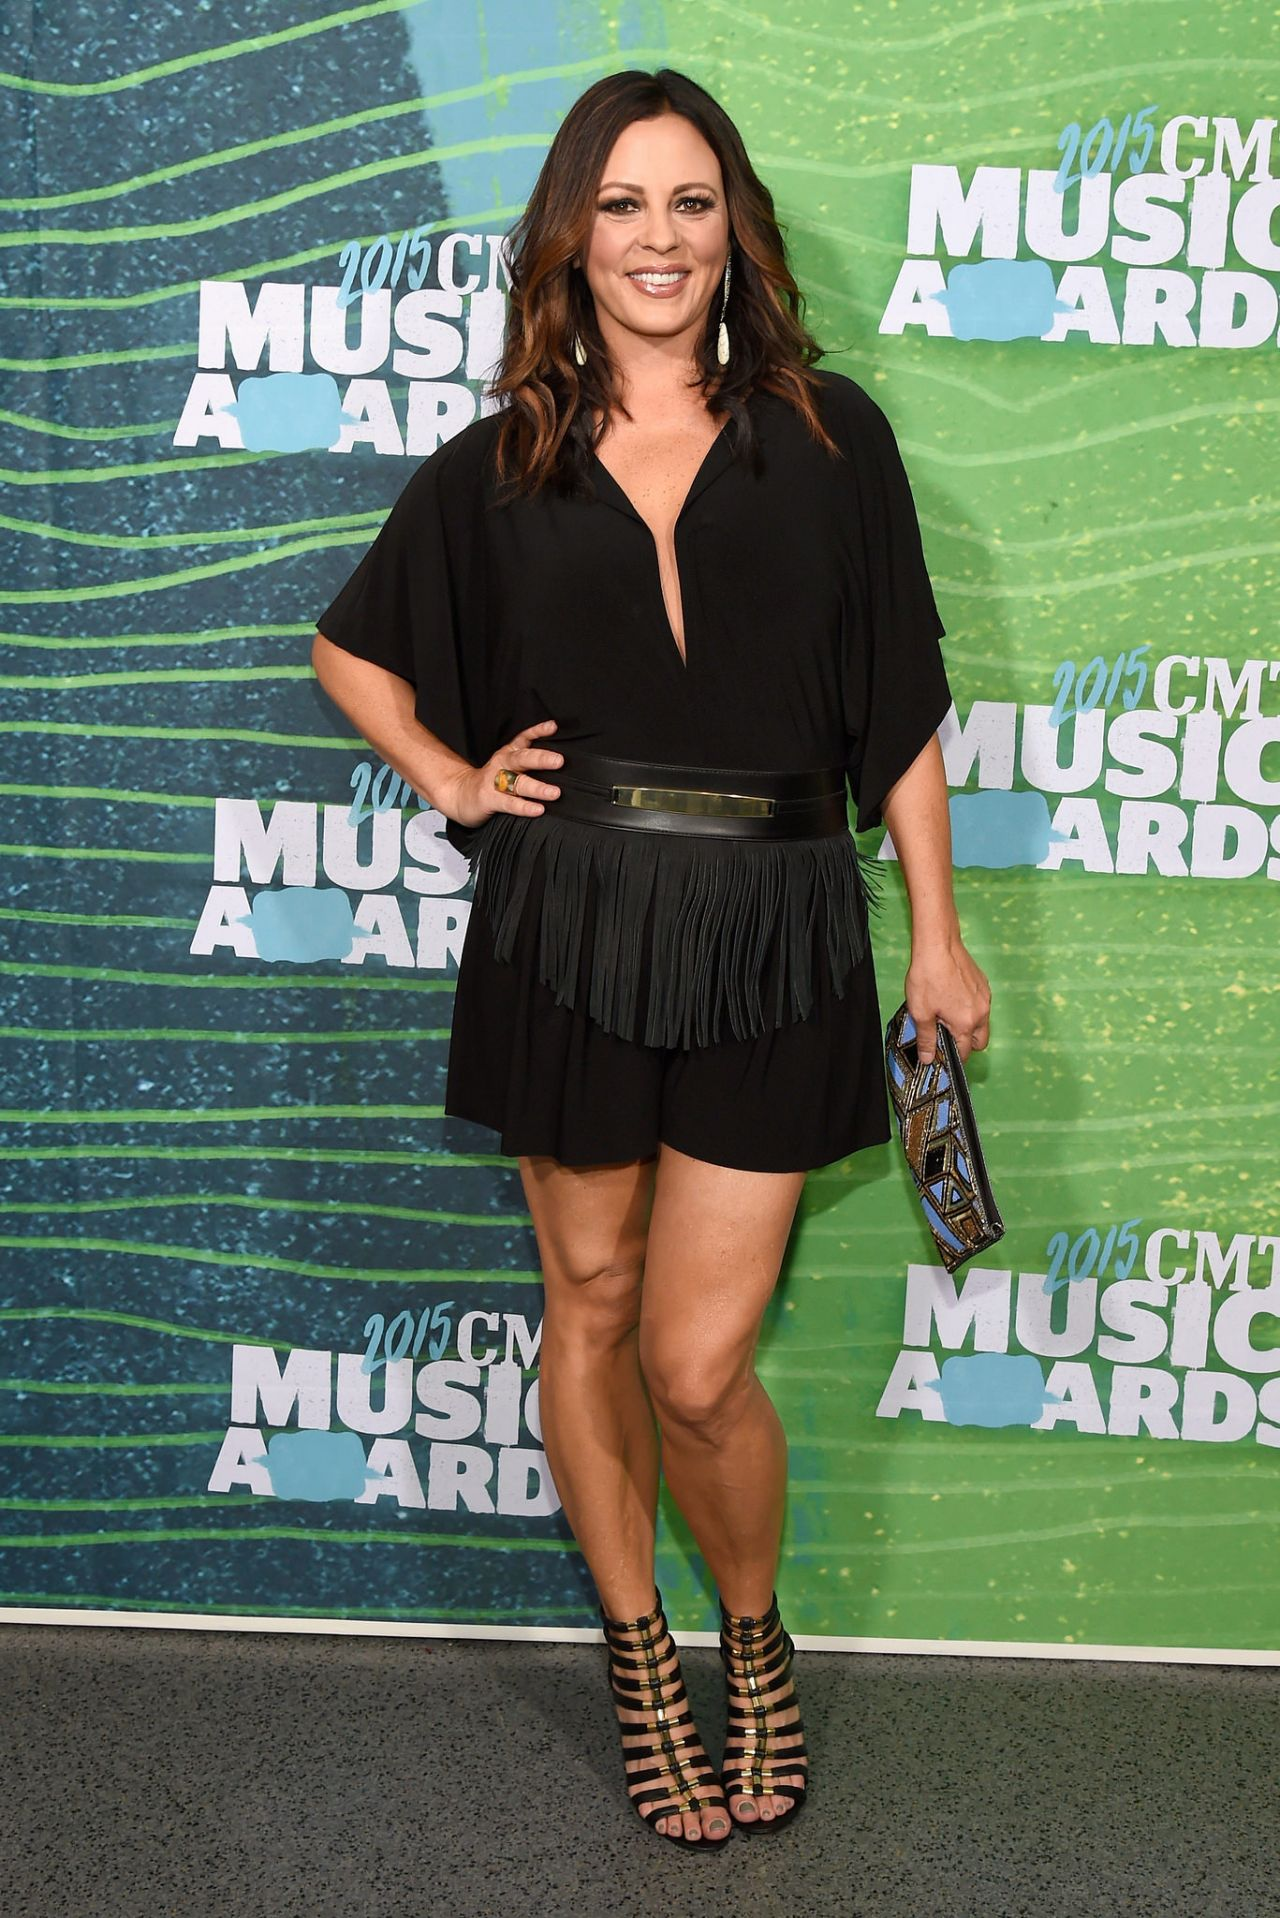 Sara Evans wearing a black dress and holding a purse in her hand.